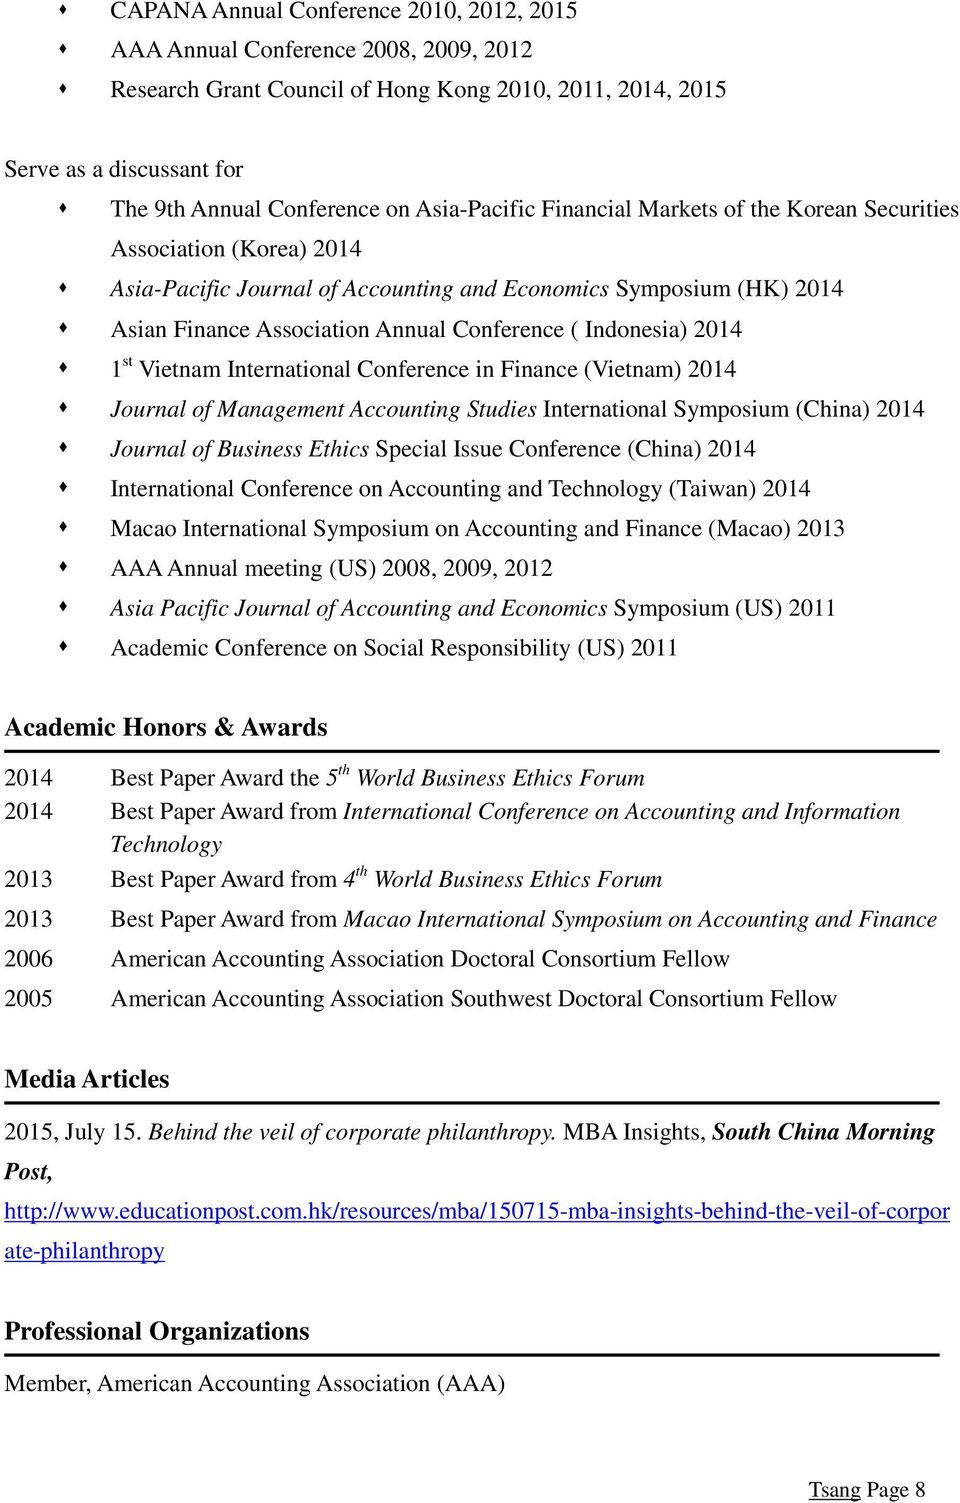 Indonesia) 2014 1 st Vietnam International Conference in Finance (Vietnam) 2014 Journal of Management Accounting Studies International Symposium (China) 2014 Journal of Business Ethics Special Issue